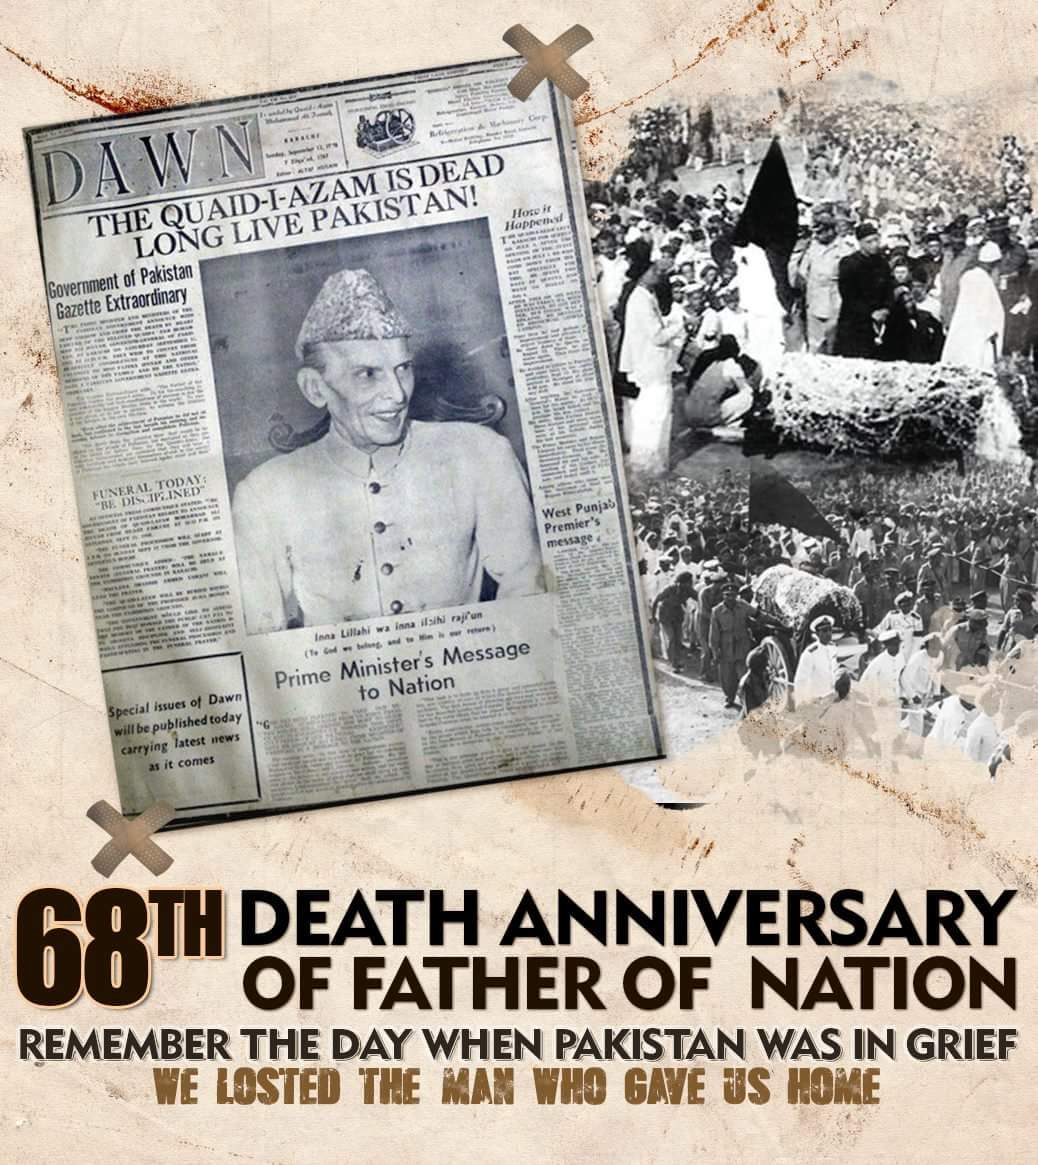 Noman Sarwar On Twitter Today Is 68th Death Anniversary Of Father